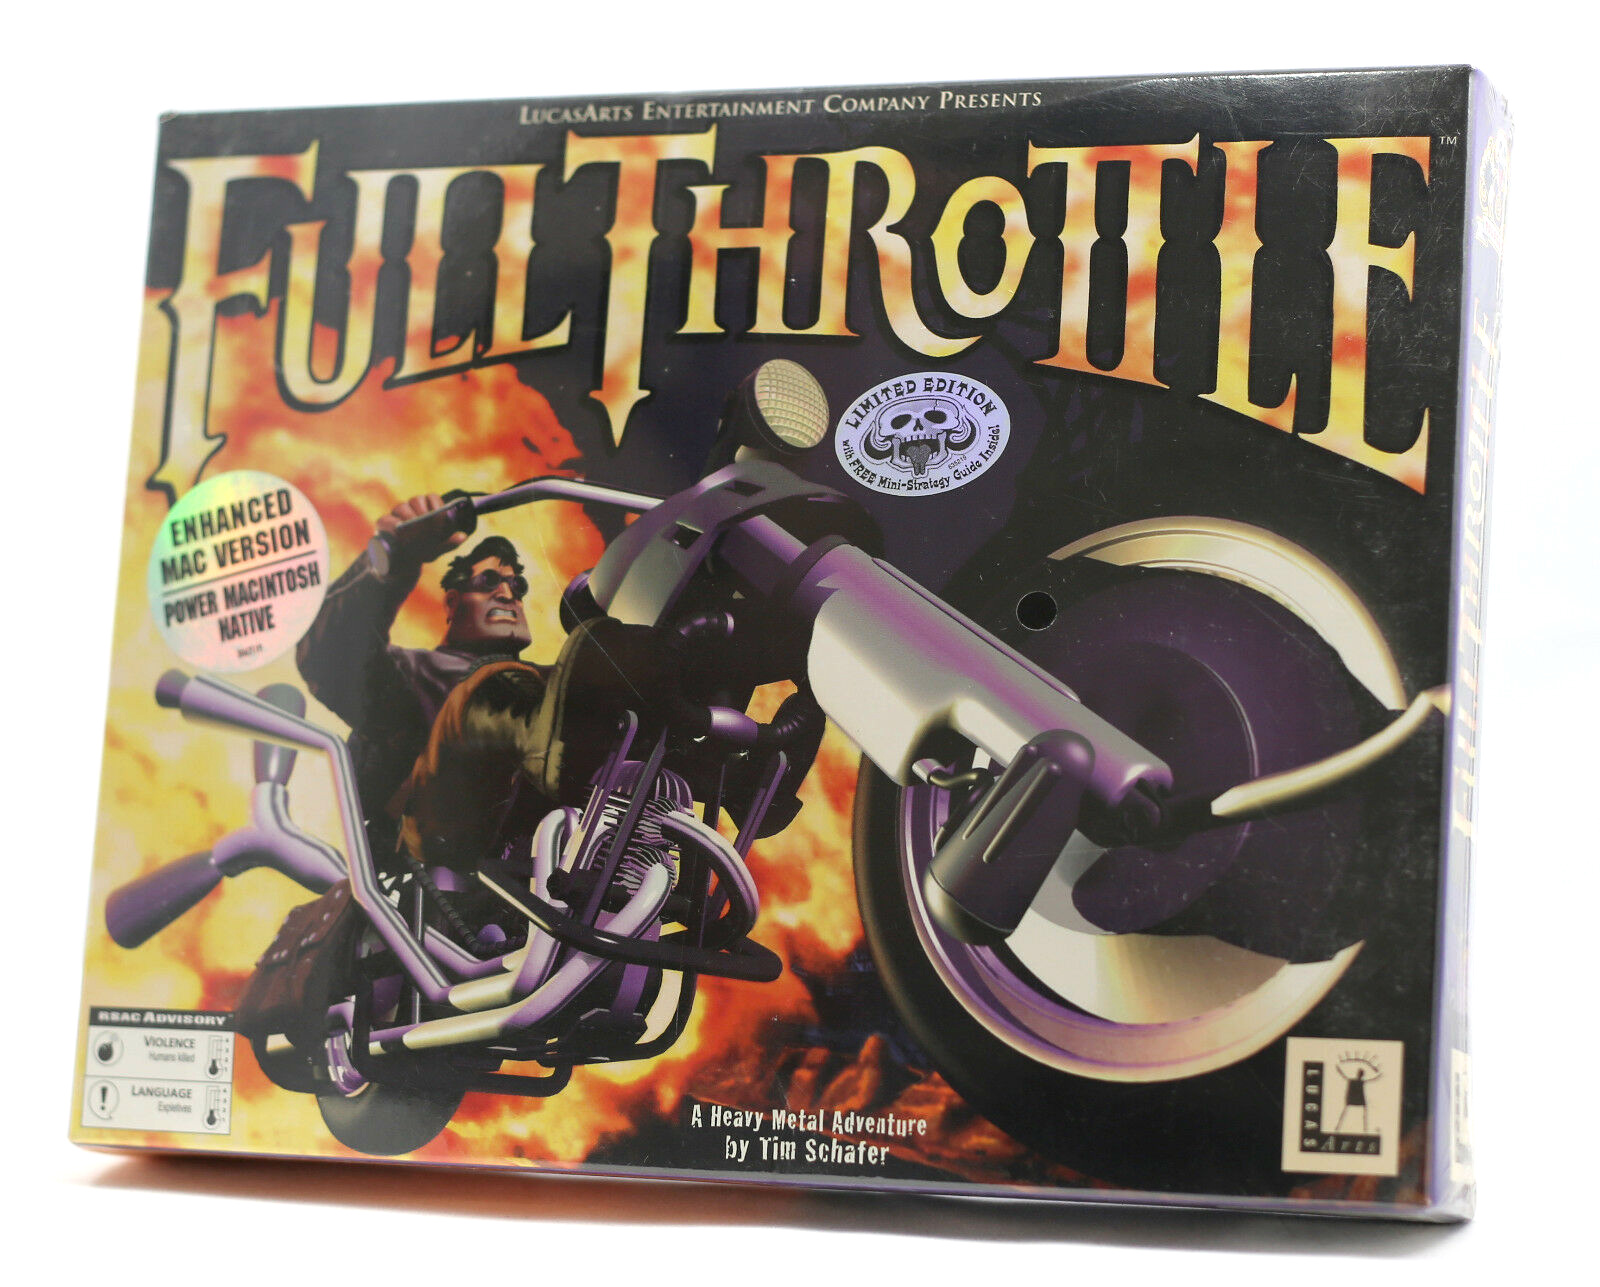 Full Throttle, by Tim Schafer and Lucasarts.